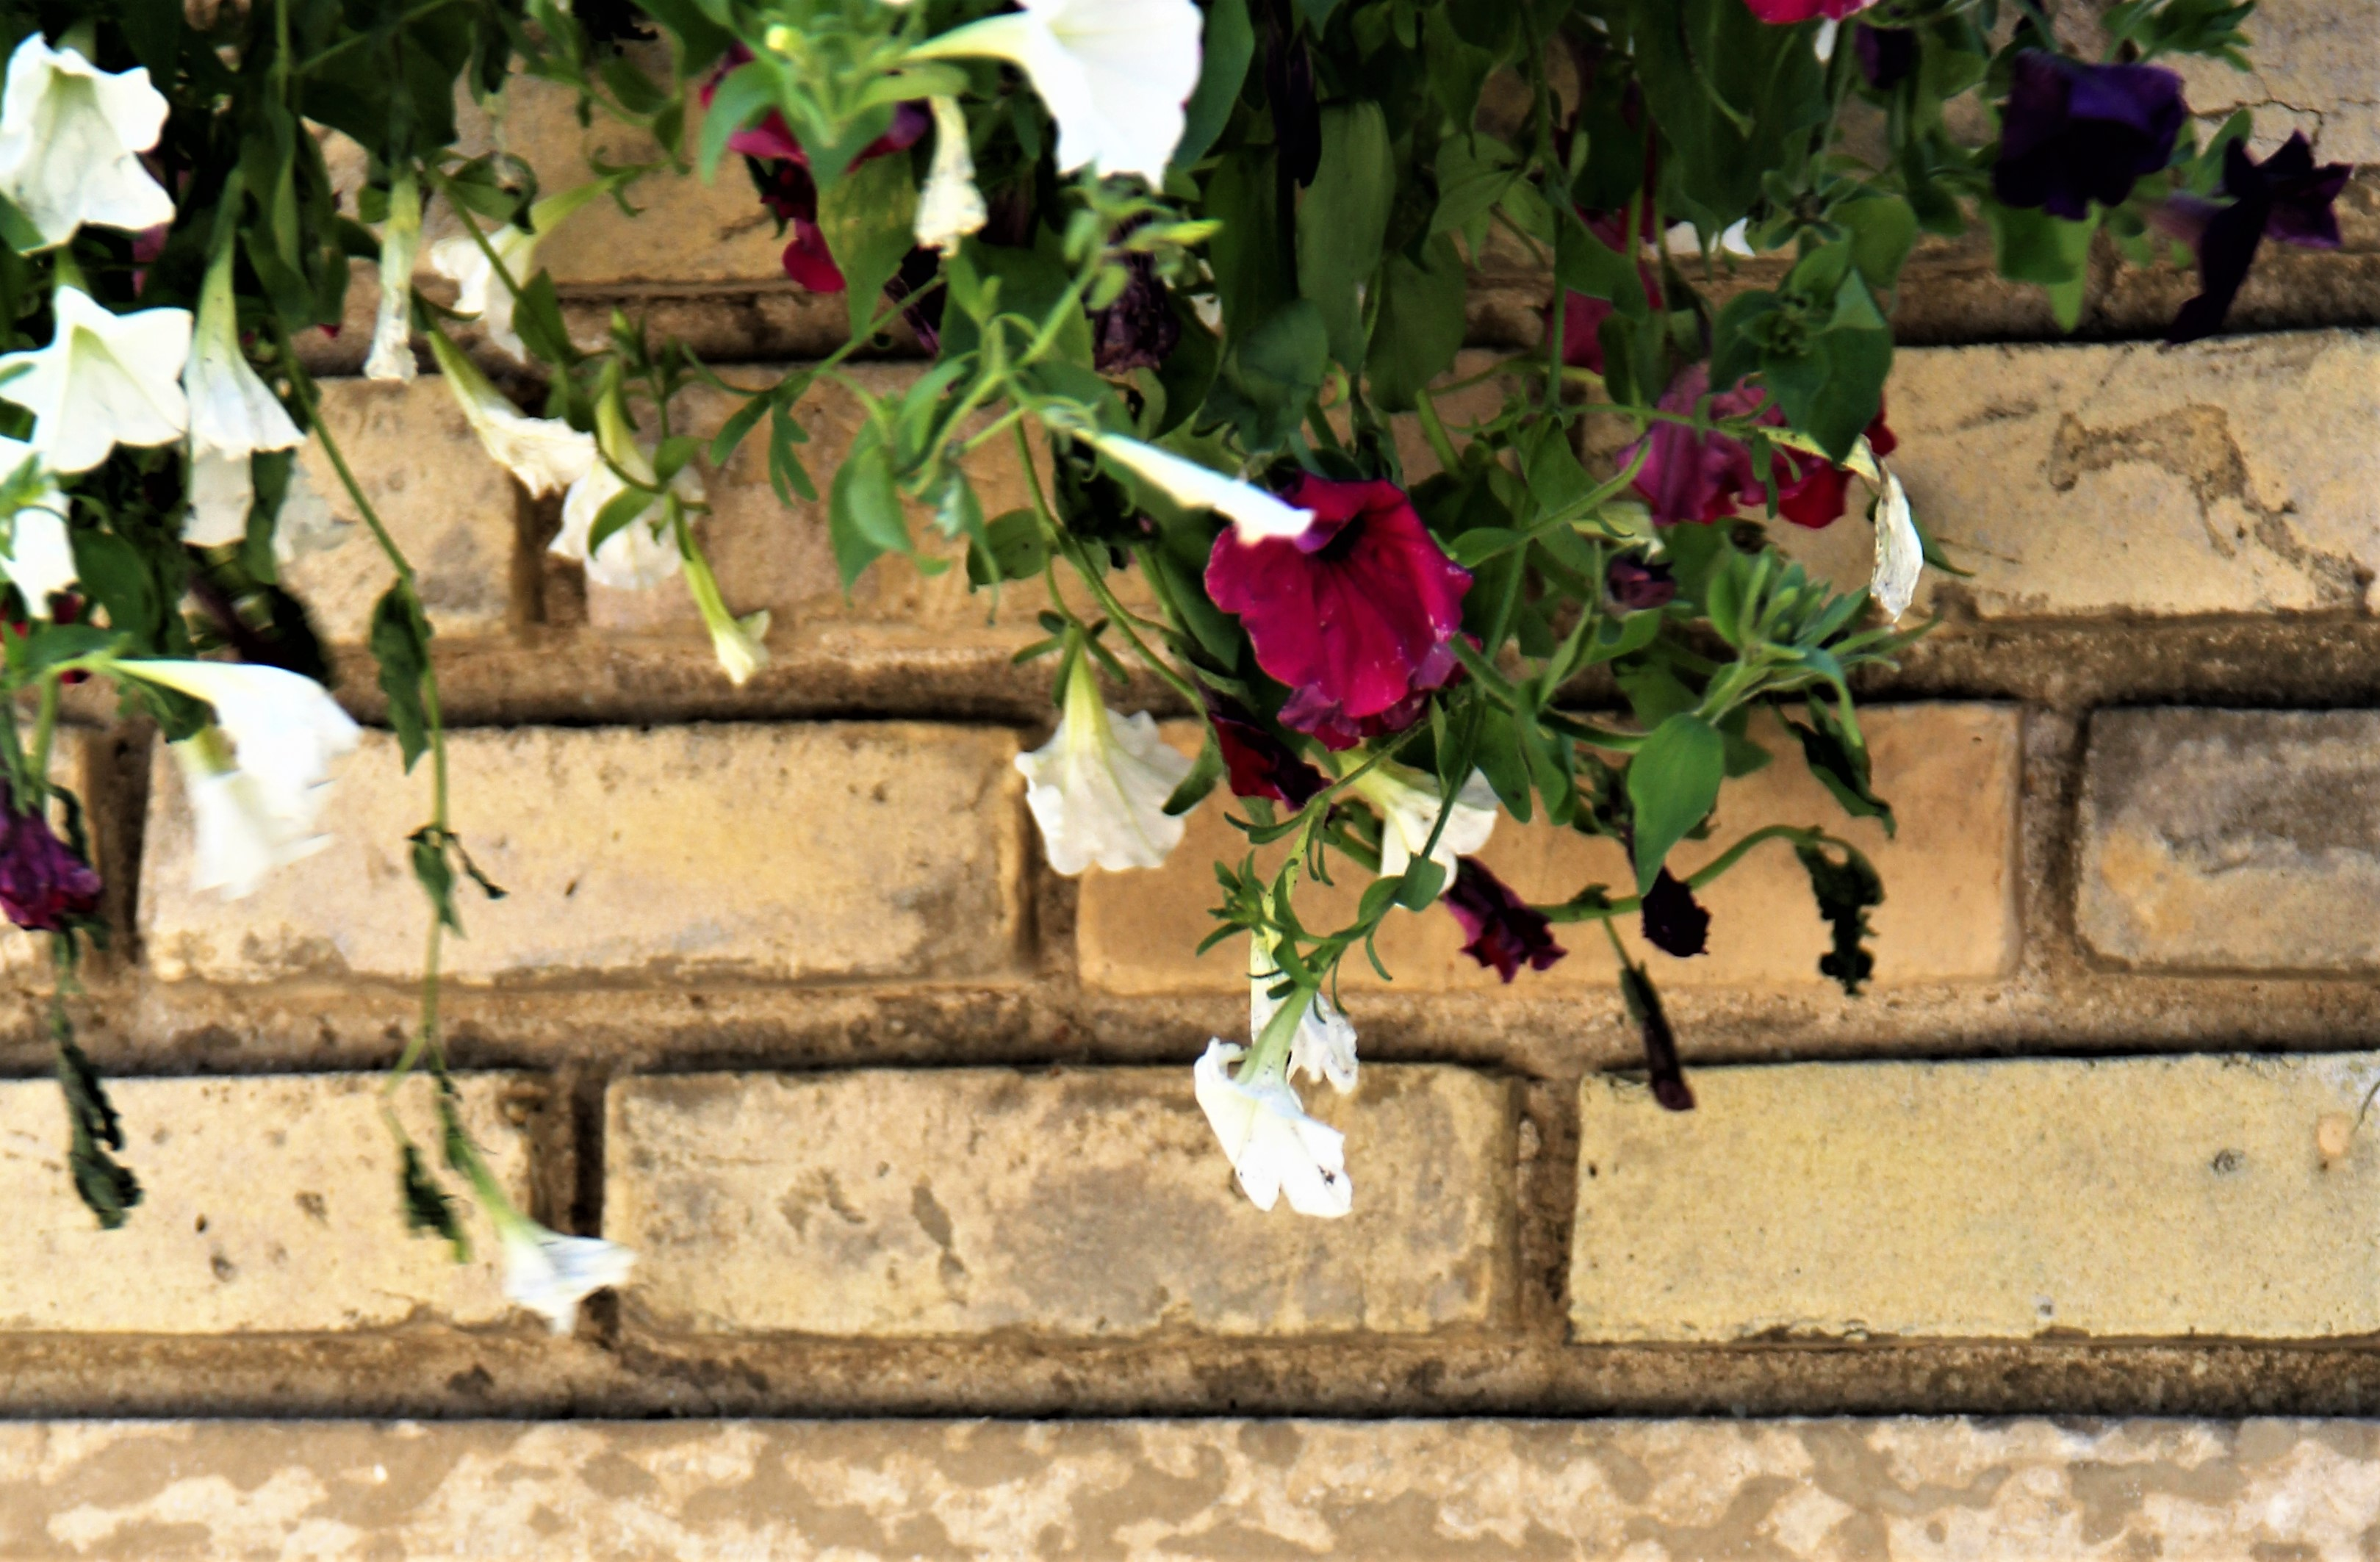 Flowers along a brick wall